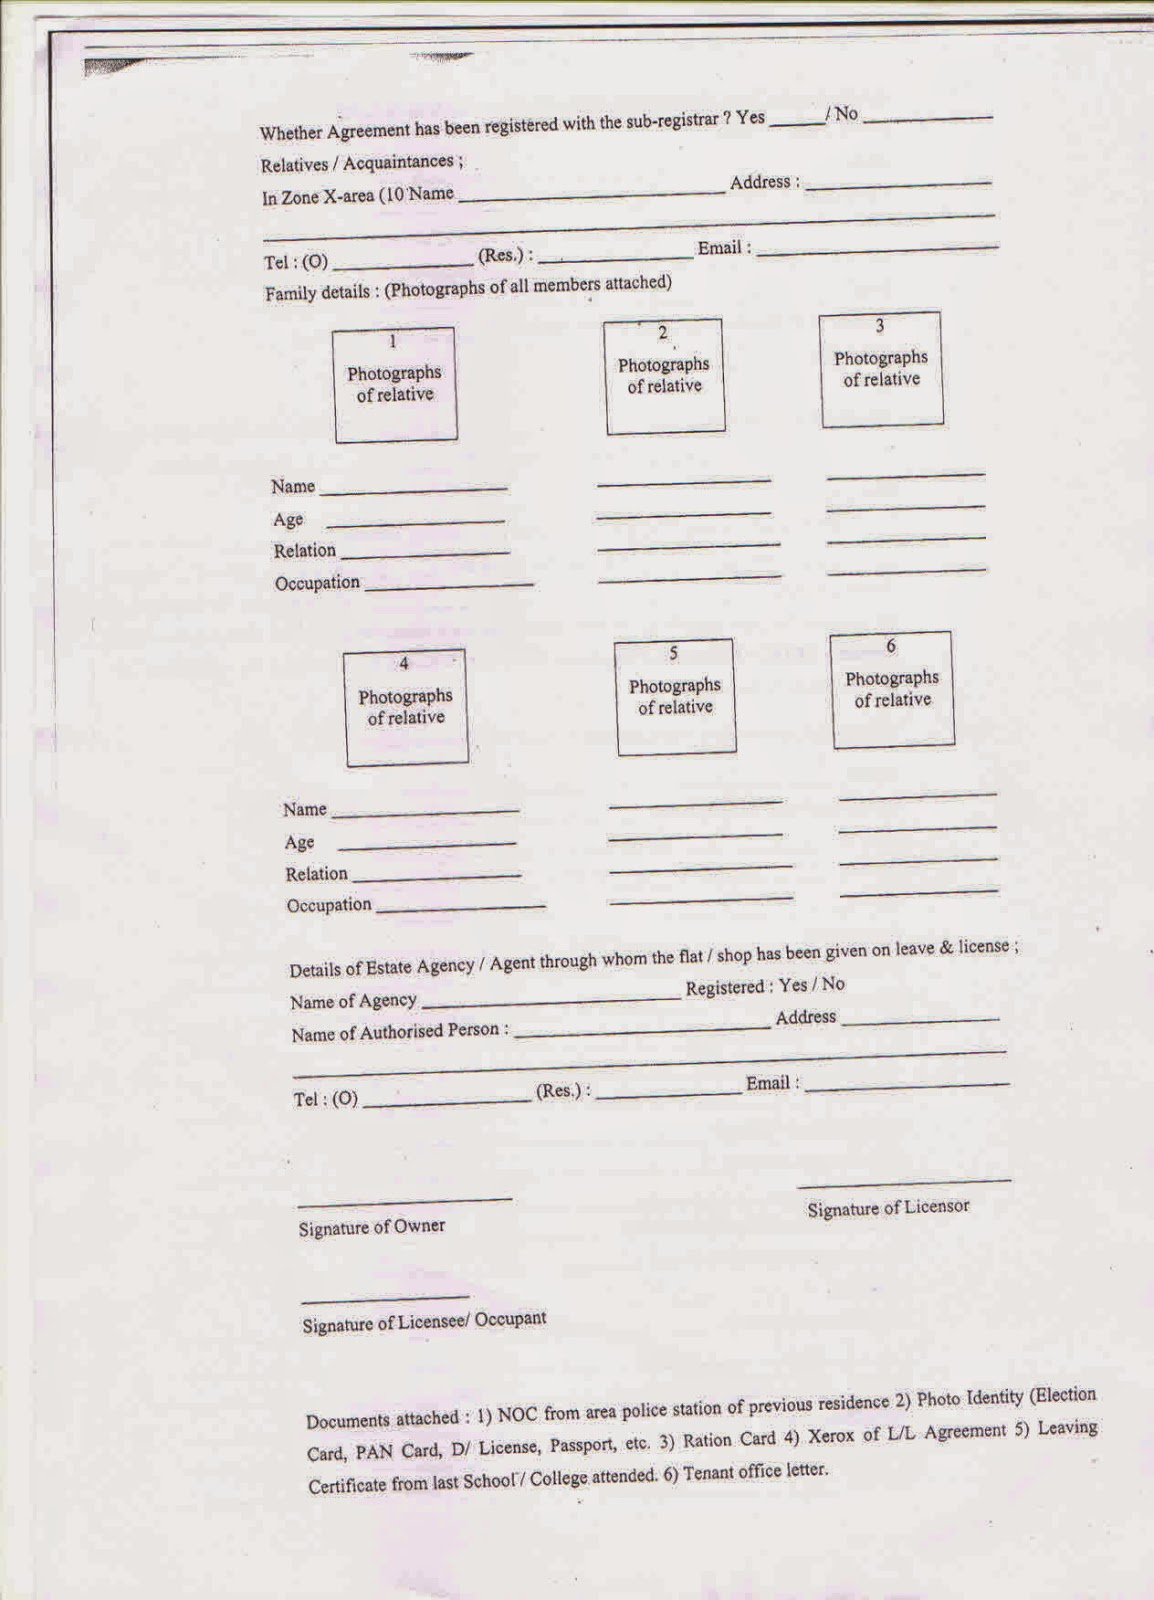 Format Of Noc Letter From Previous Auditor. SAHAKARSUTRA Police Verification format for a Cooperative Housing Society